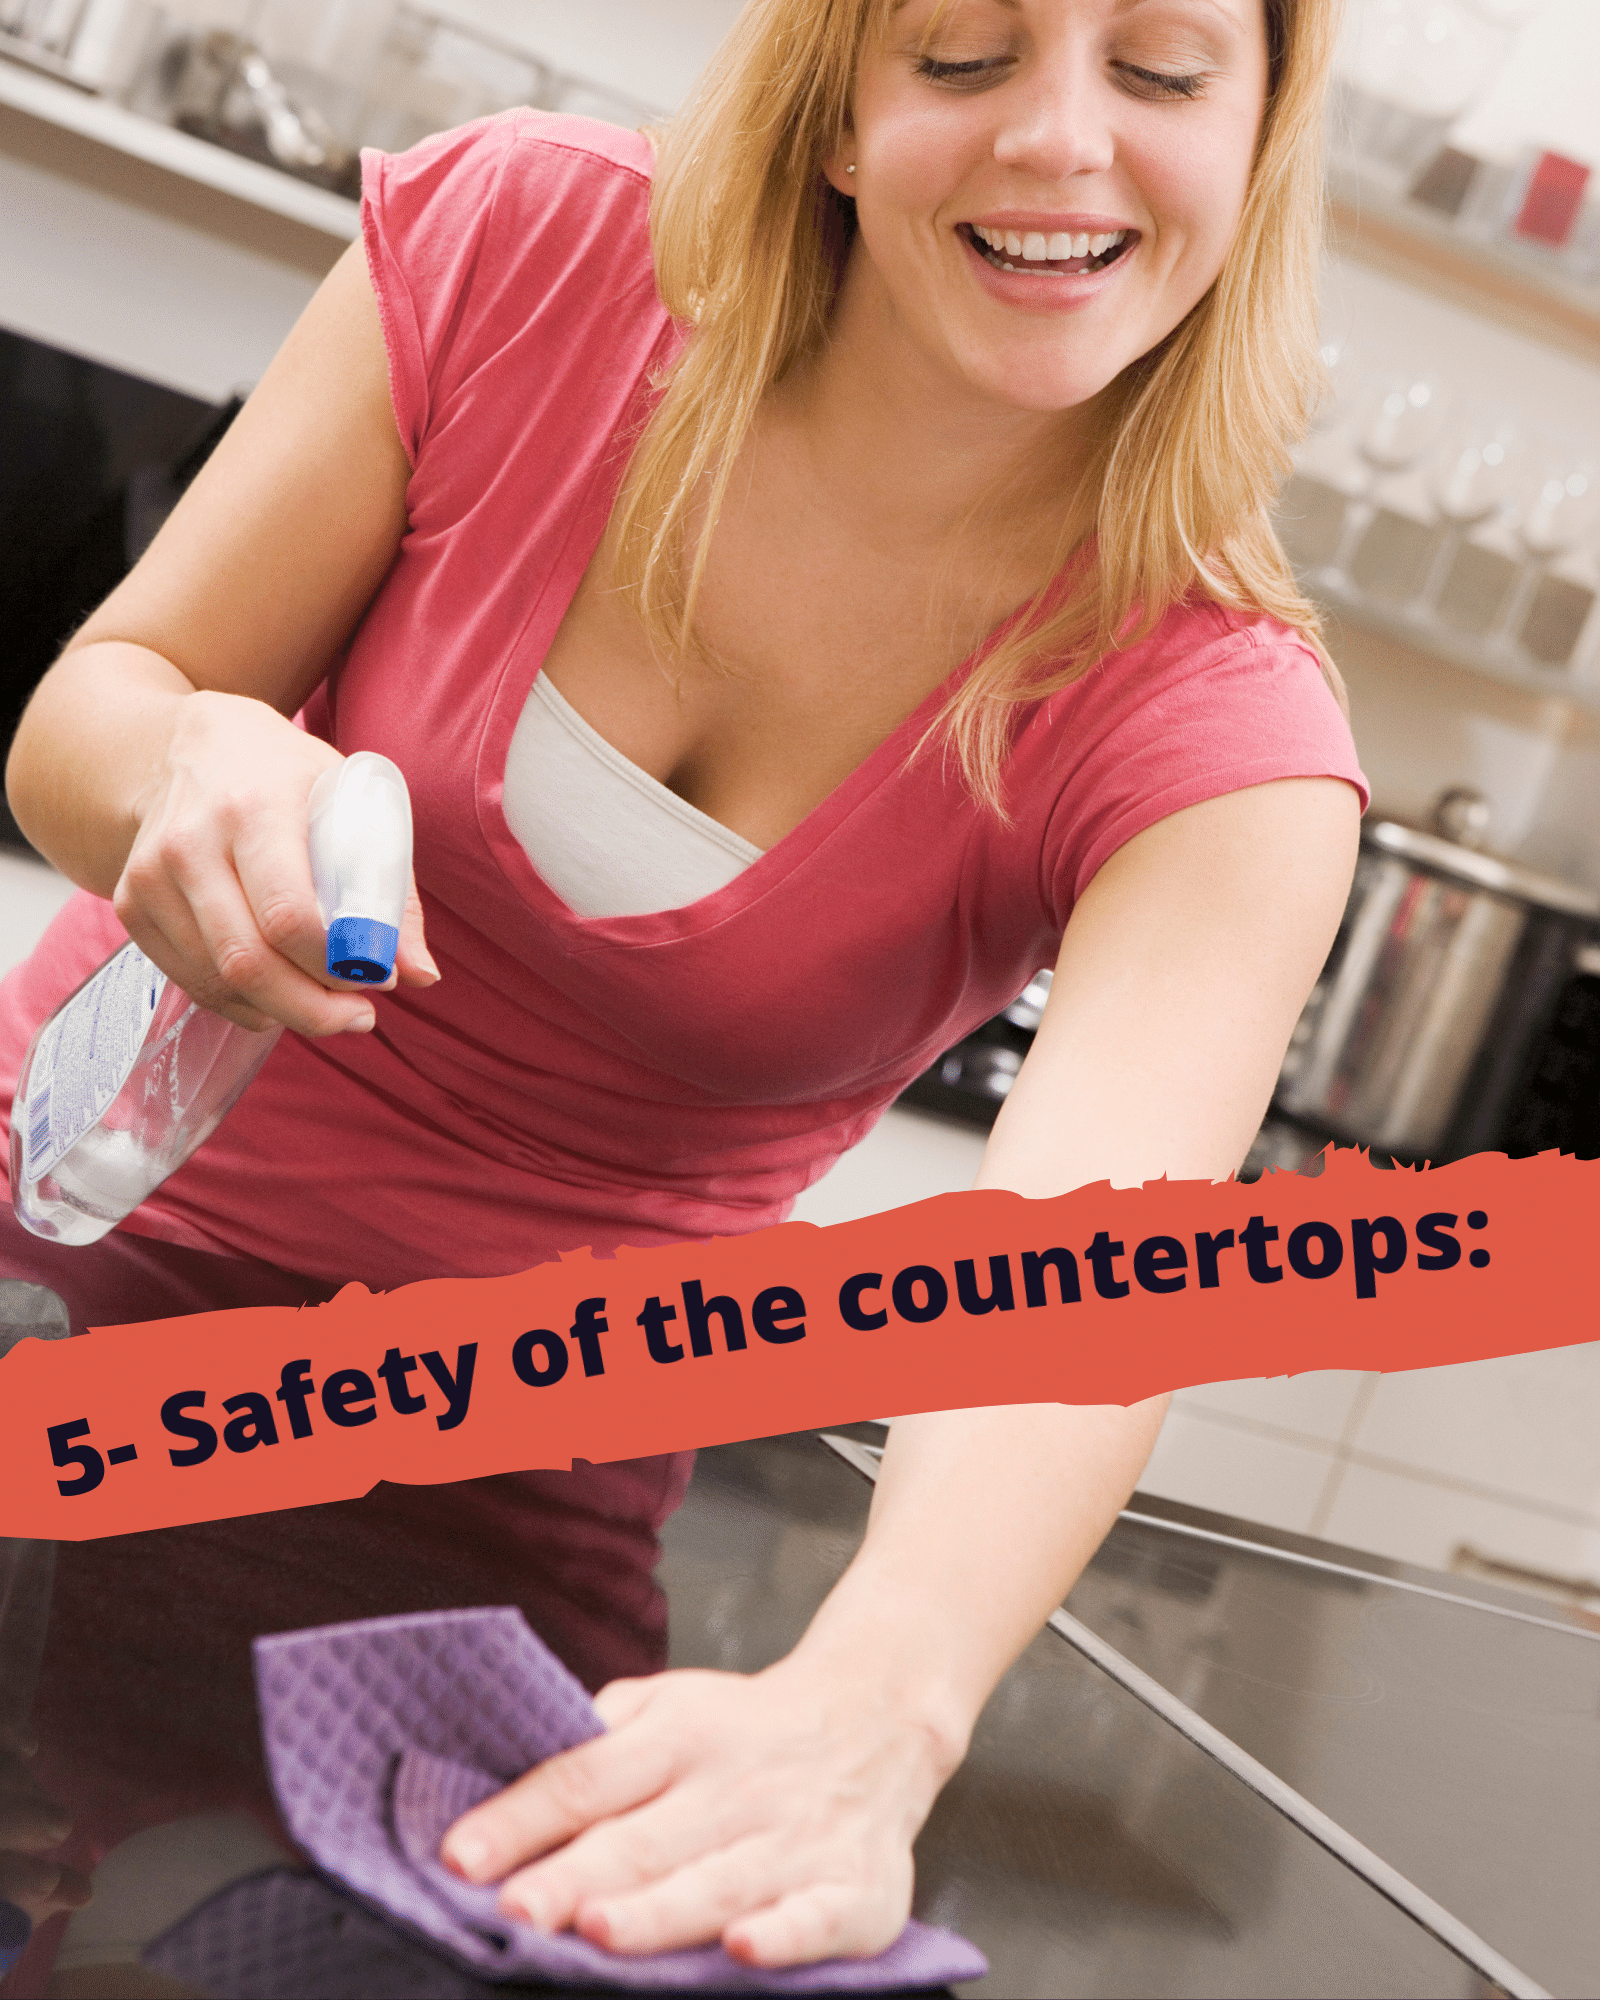 Safety Of the Countertops